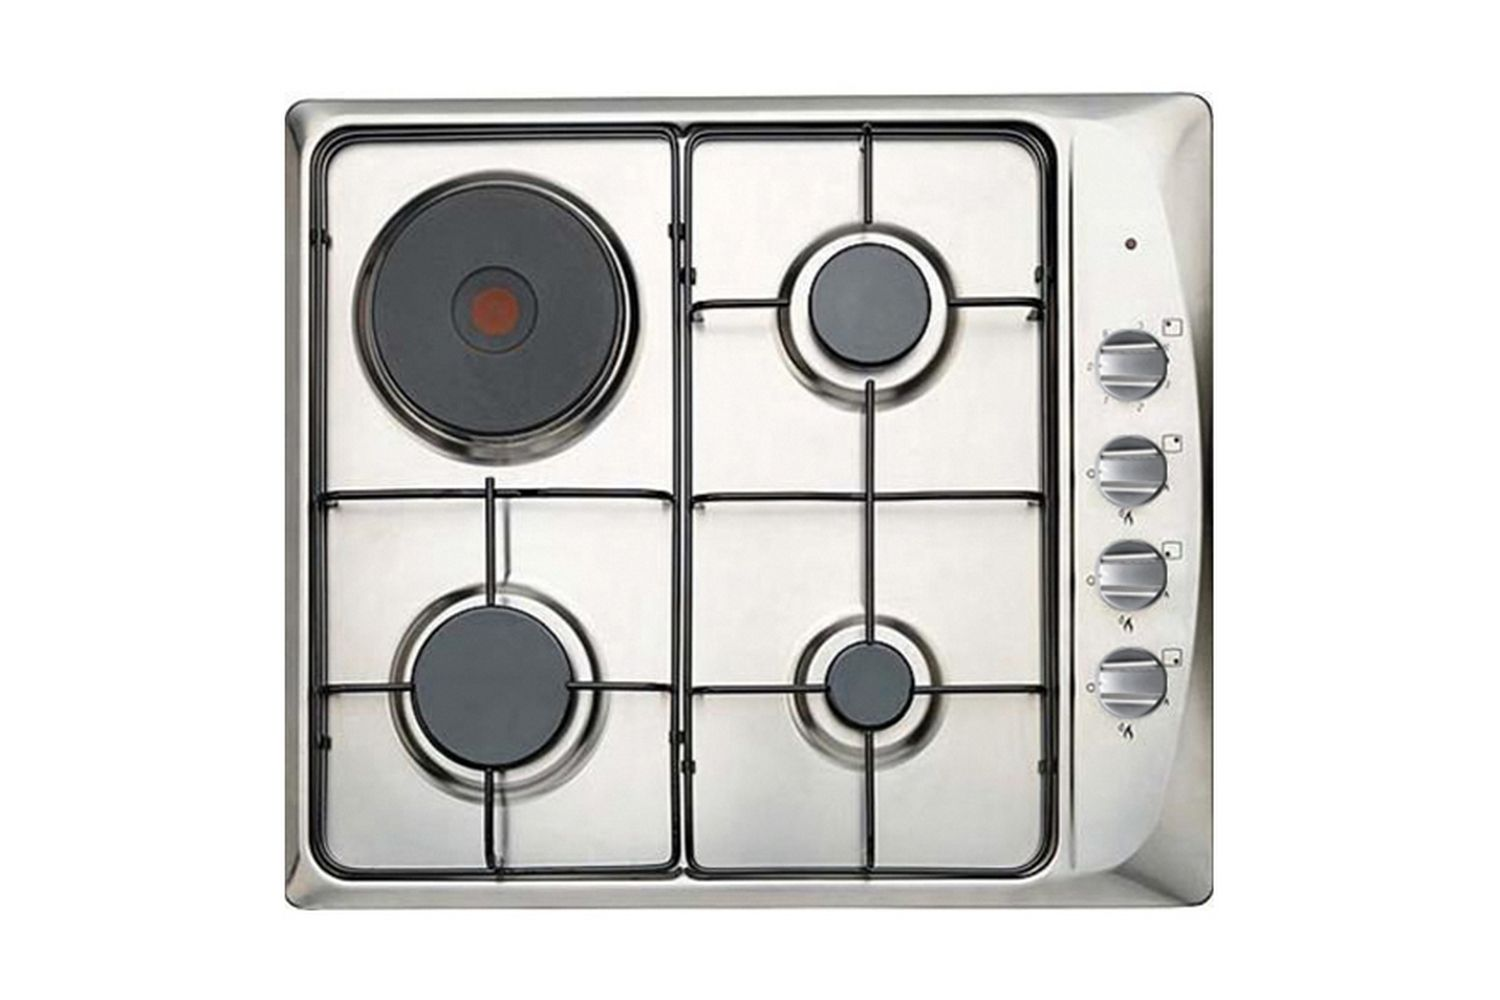 Hobs Teka Komnit Express In 2020 Hobs Gas And Electric Electric Hob